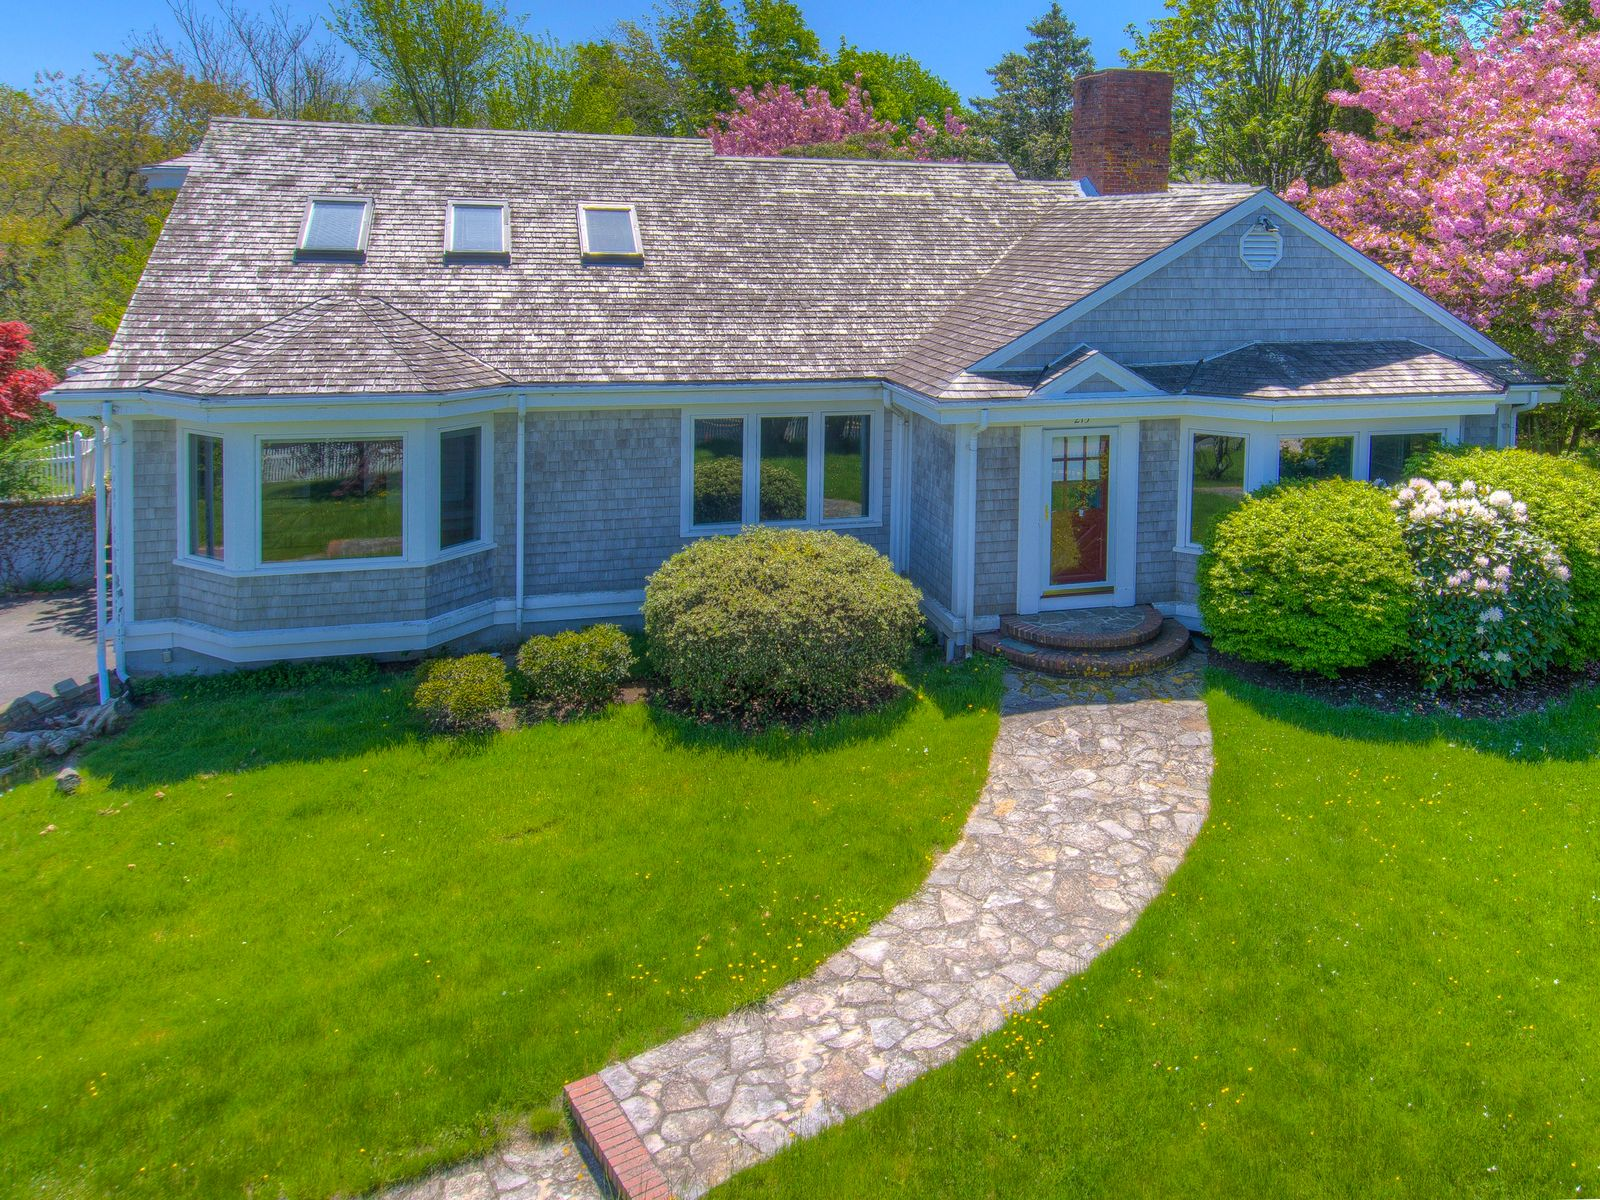 Chatham Cape Cod Retreat, Chatham MA Single Family Home - Cape Cod Real Estate